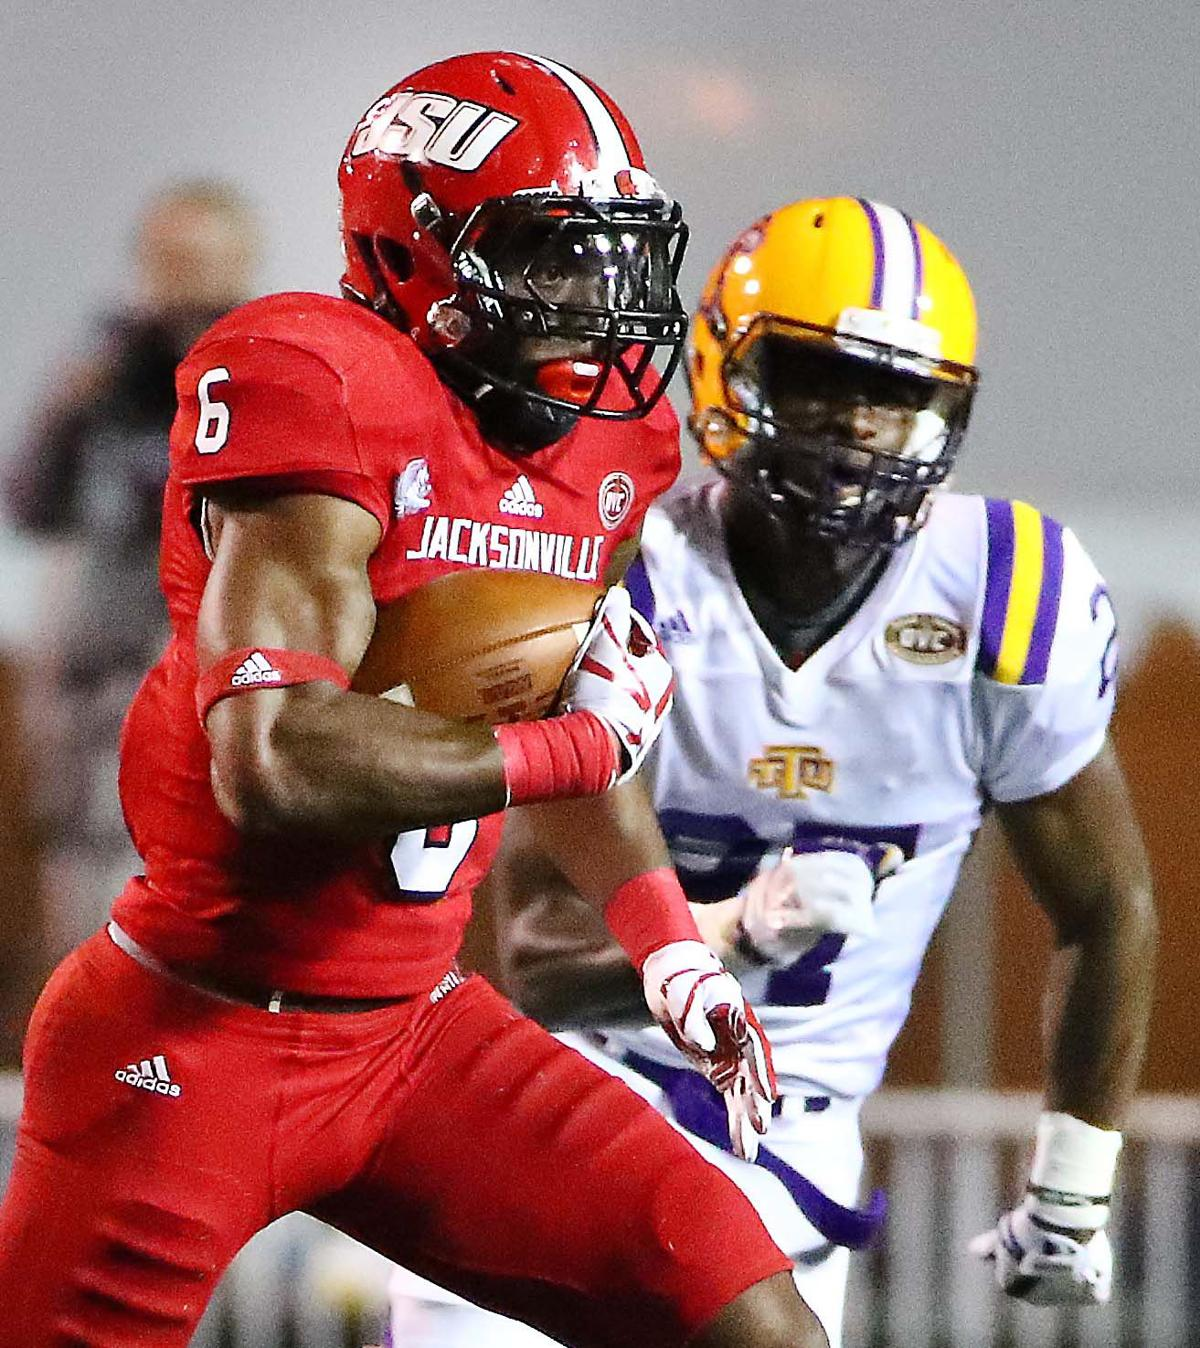 official photos dfce7 f5df6 JSU at Tennessee Tech Football Game | Slideshows ...